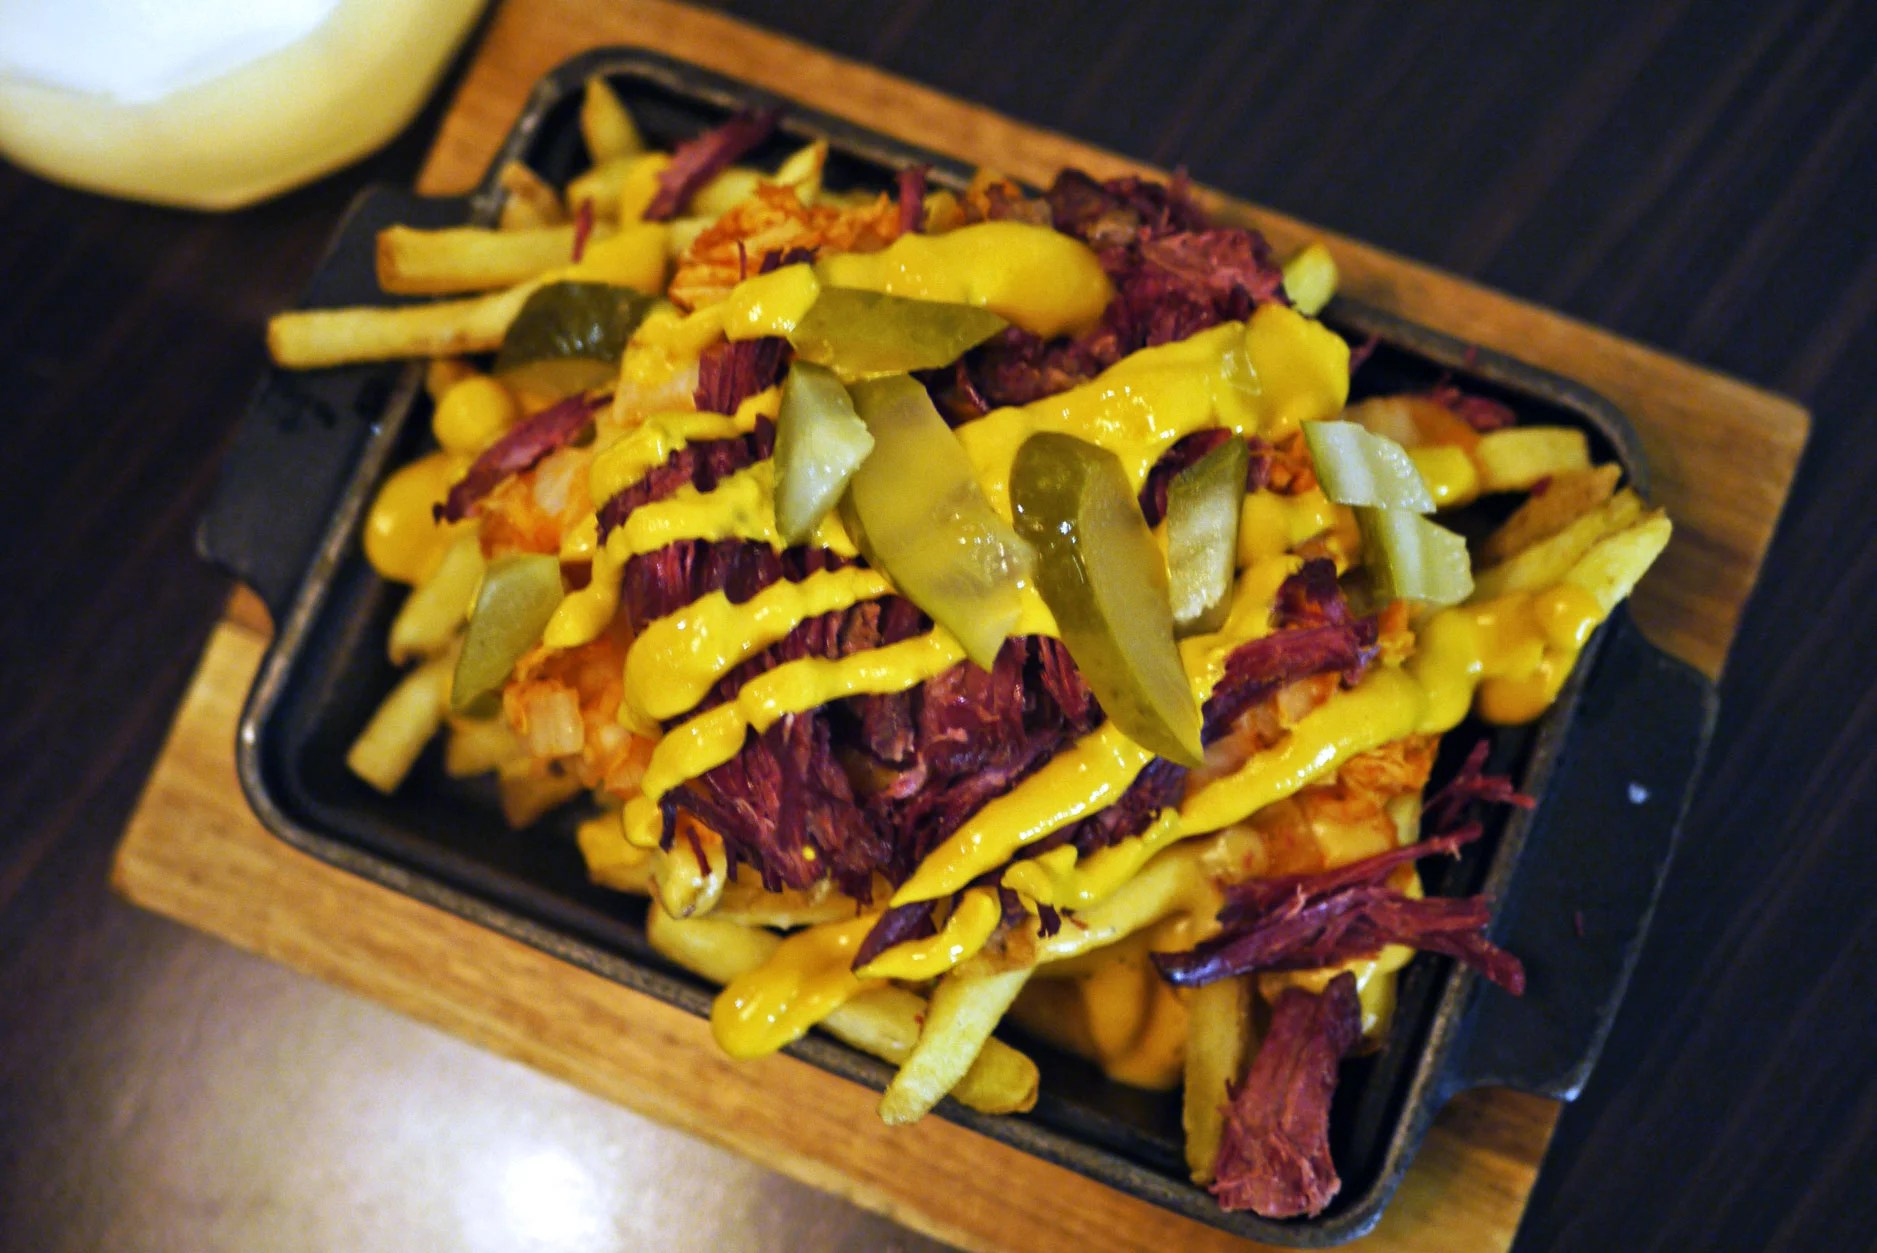 Reuben fries, £6.50